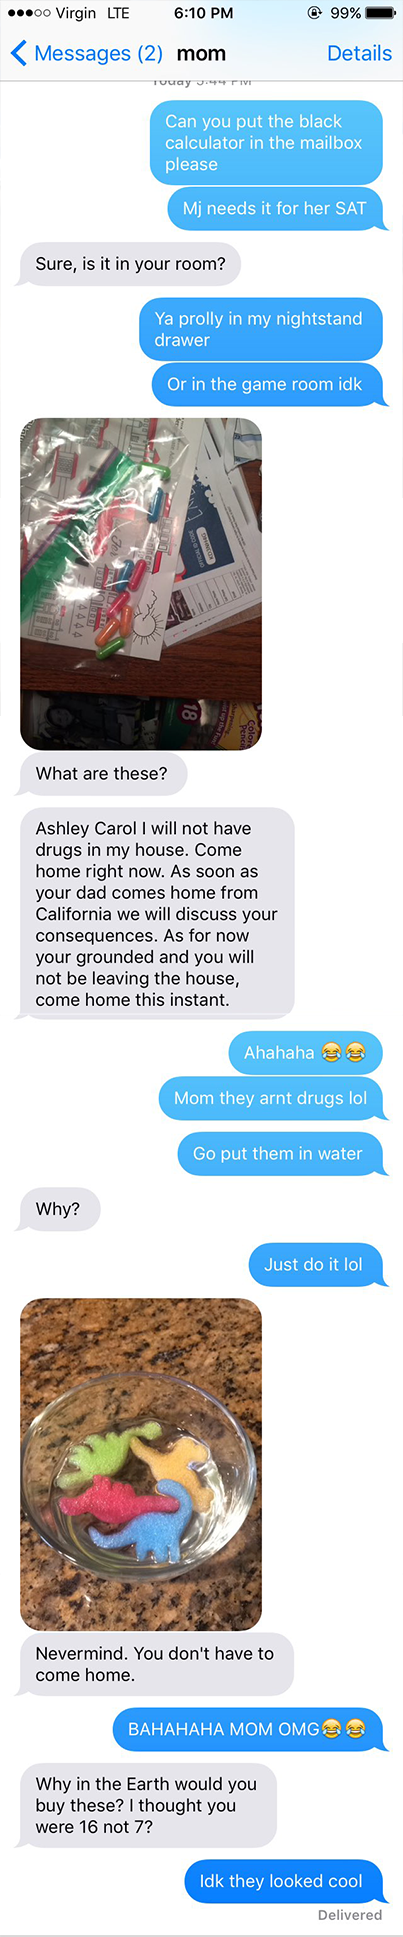 'You're grounded!': Mom thinks she found drugs in teen's room, girl's explanation ishilarious